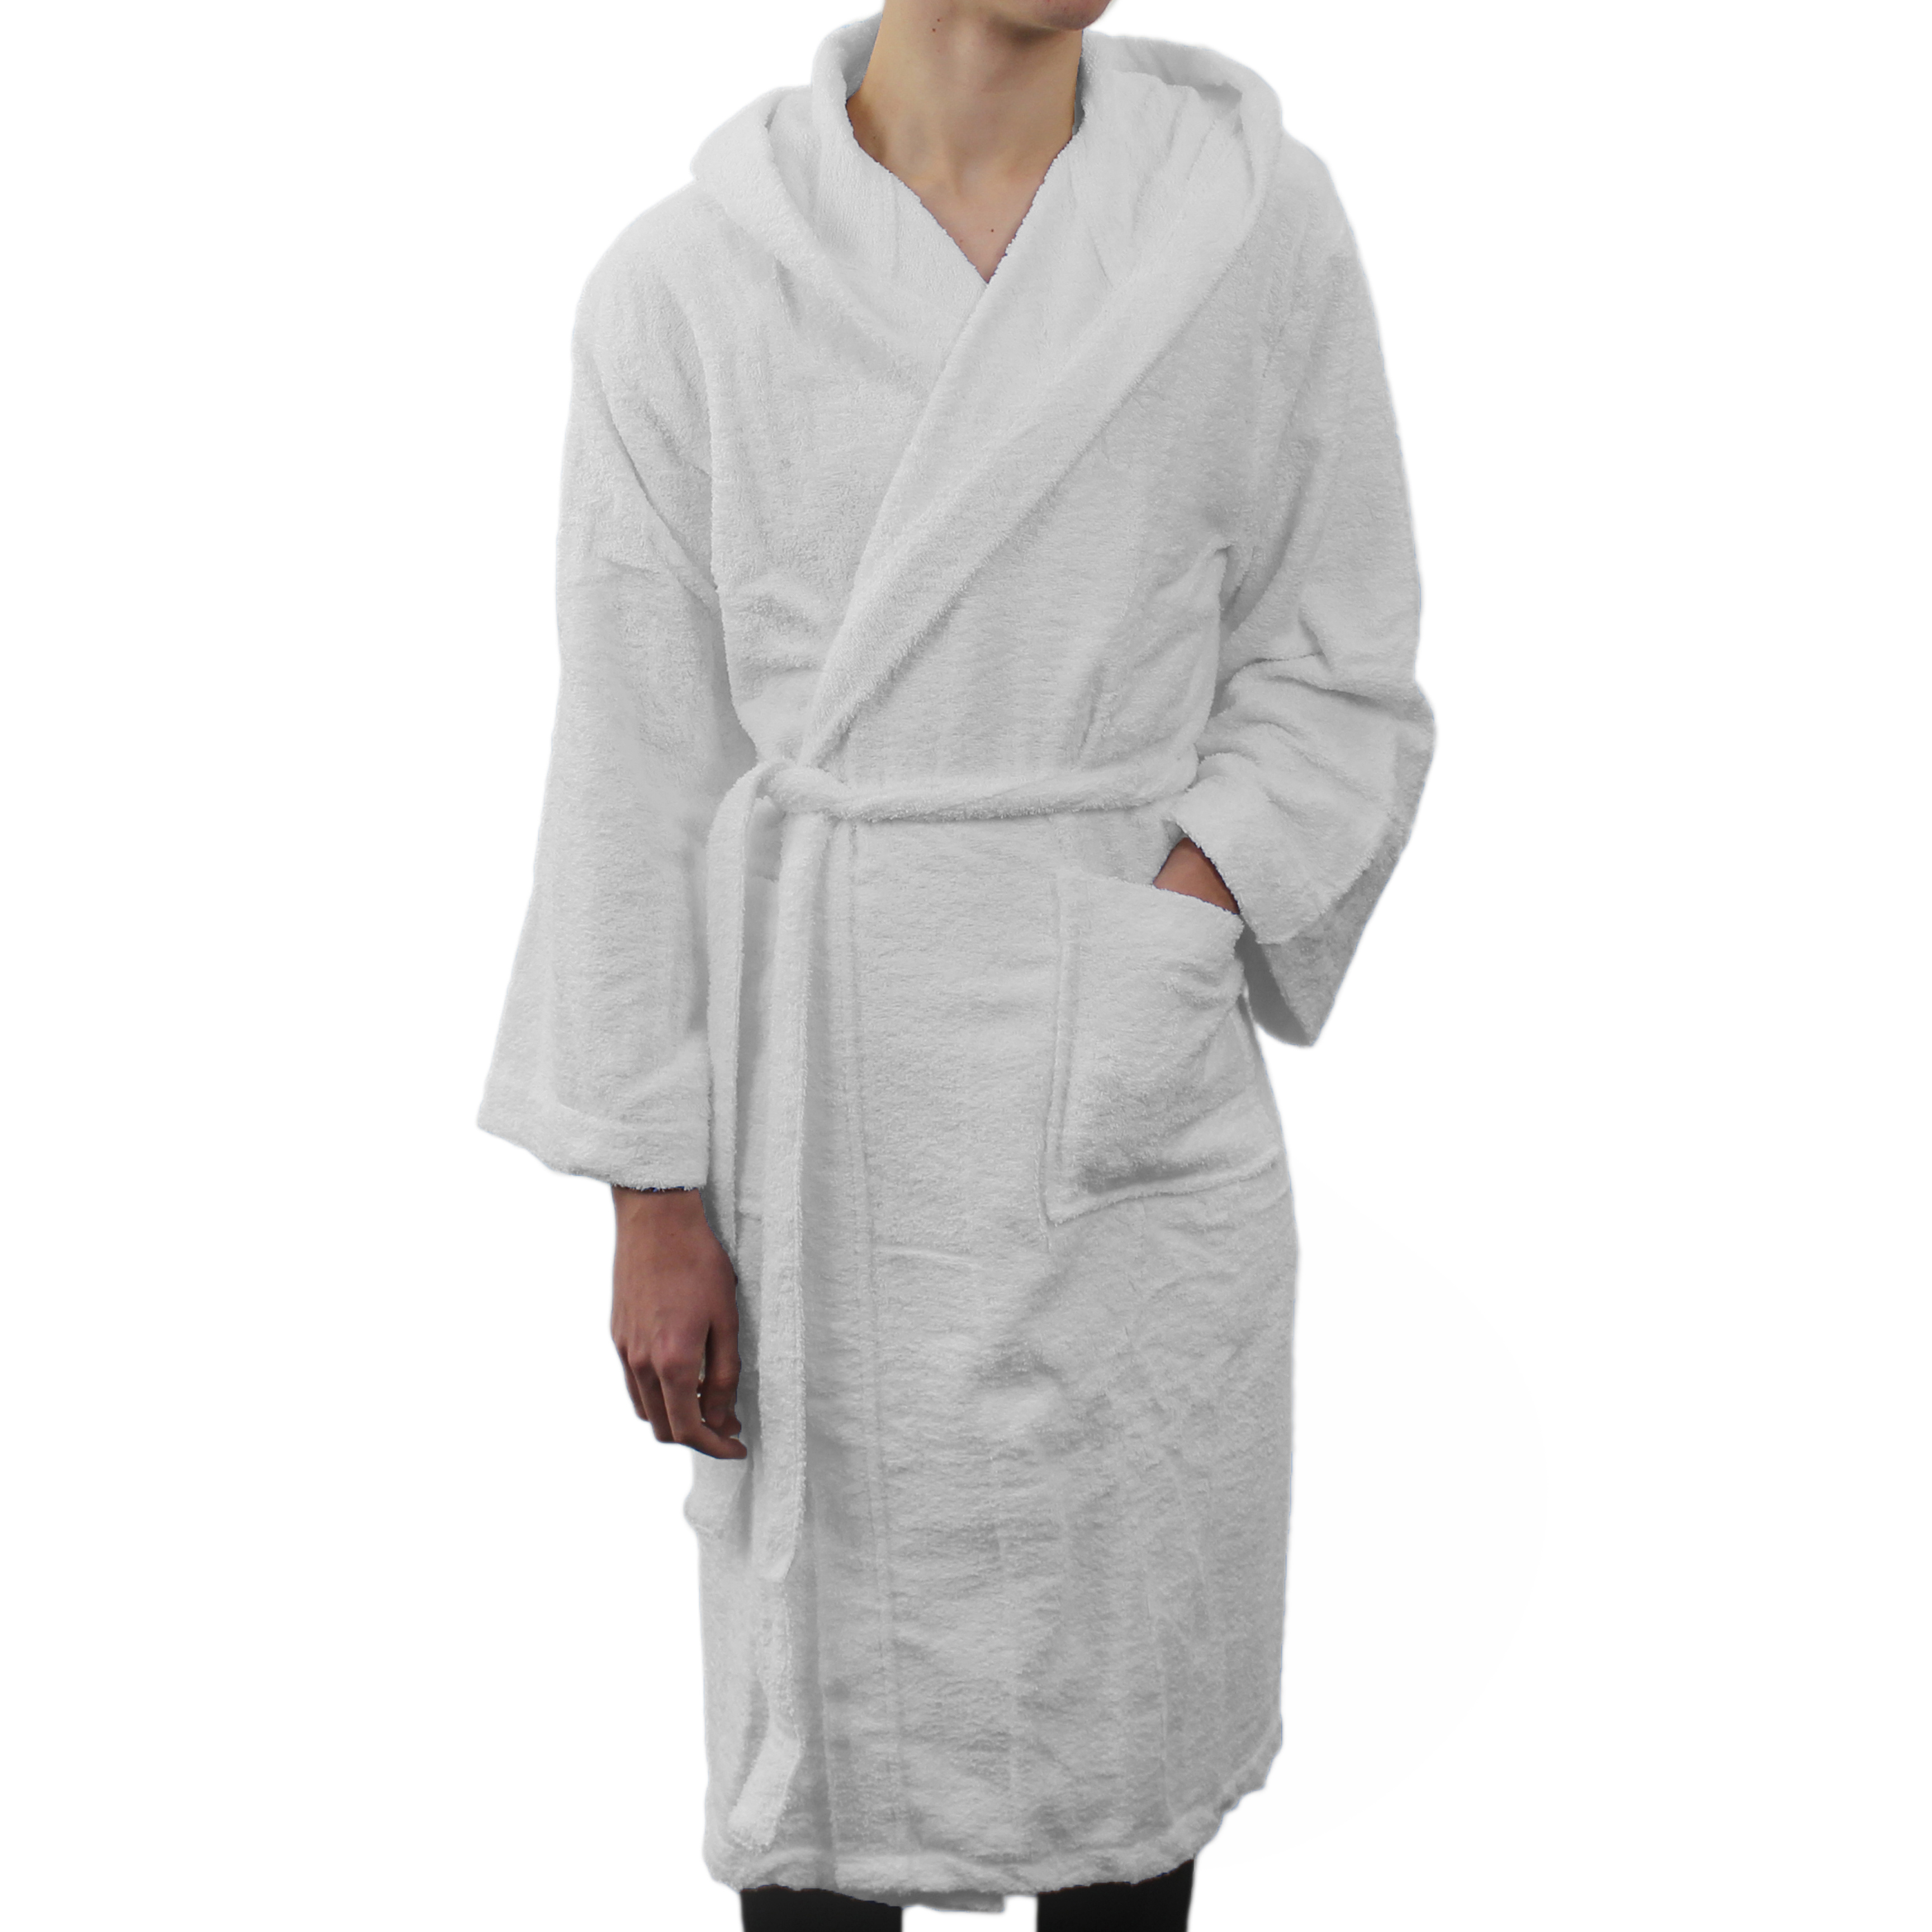 Details about Hooded Bath Robe Frette Genuine Italian 100% Cotton Soft  Dressing Gown White S M 116410a35d38